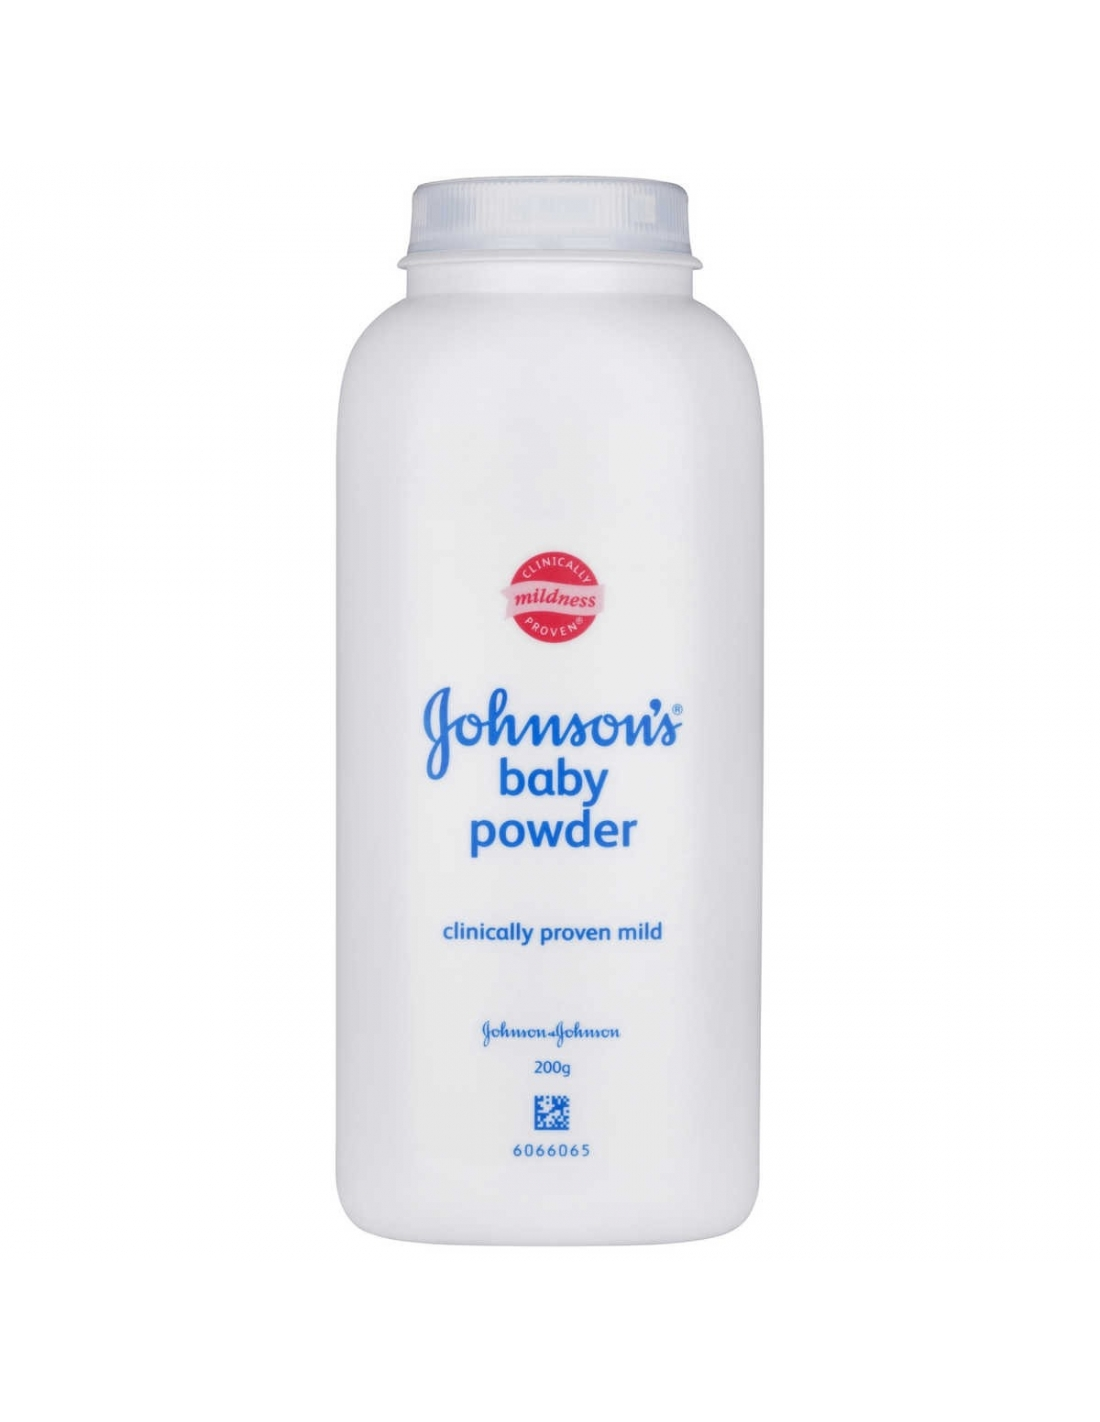 market entry of johnson and johnson Johnson & johnson business strategy  porter's five forces threat of new entrants is low ,due to entry barriers such as investment cap and tuff regulations .